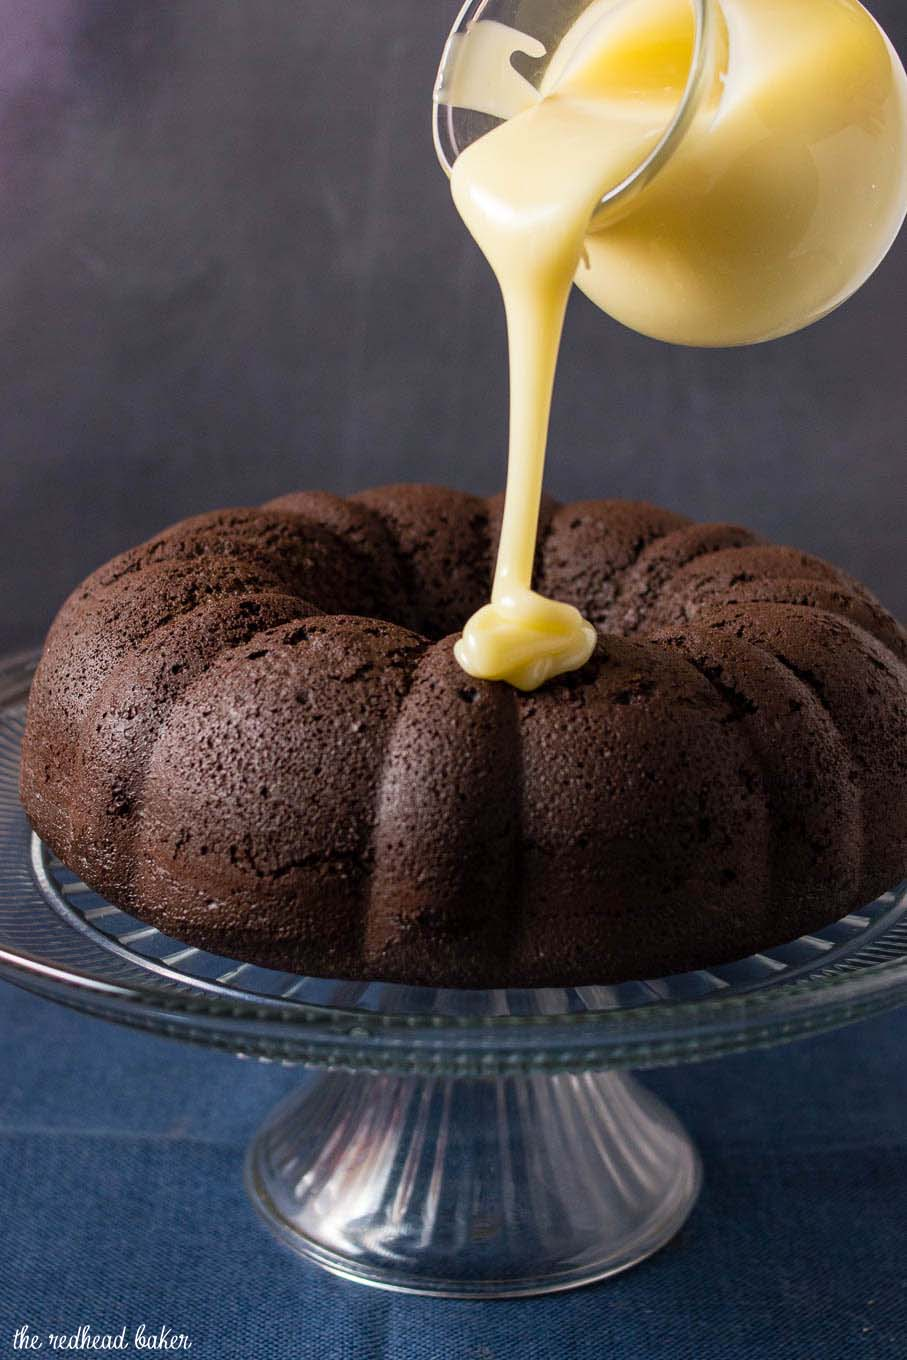 A shot of white chocolate icing being poured onto fudgy chocolate bundt cake.